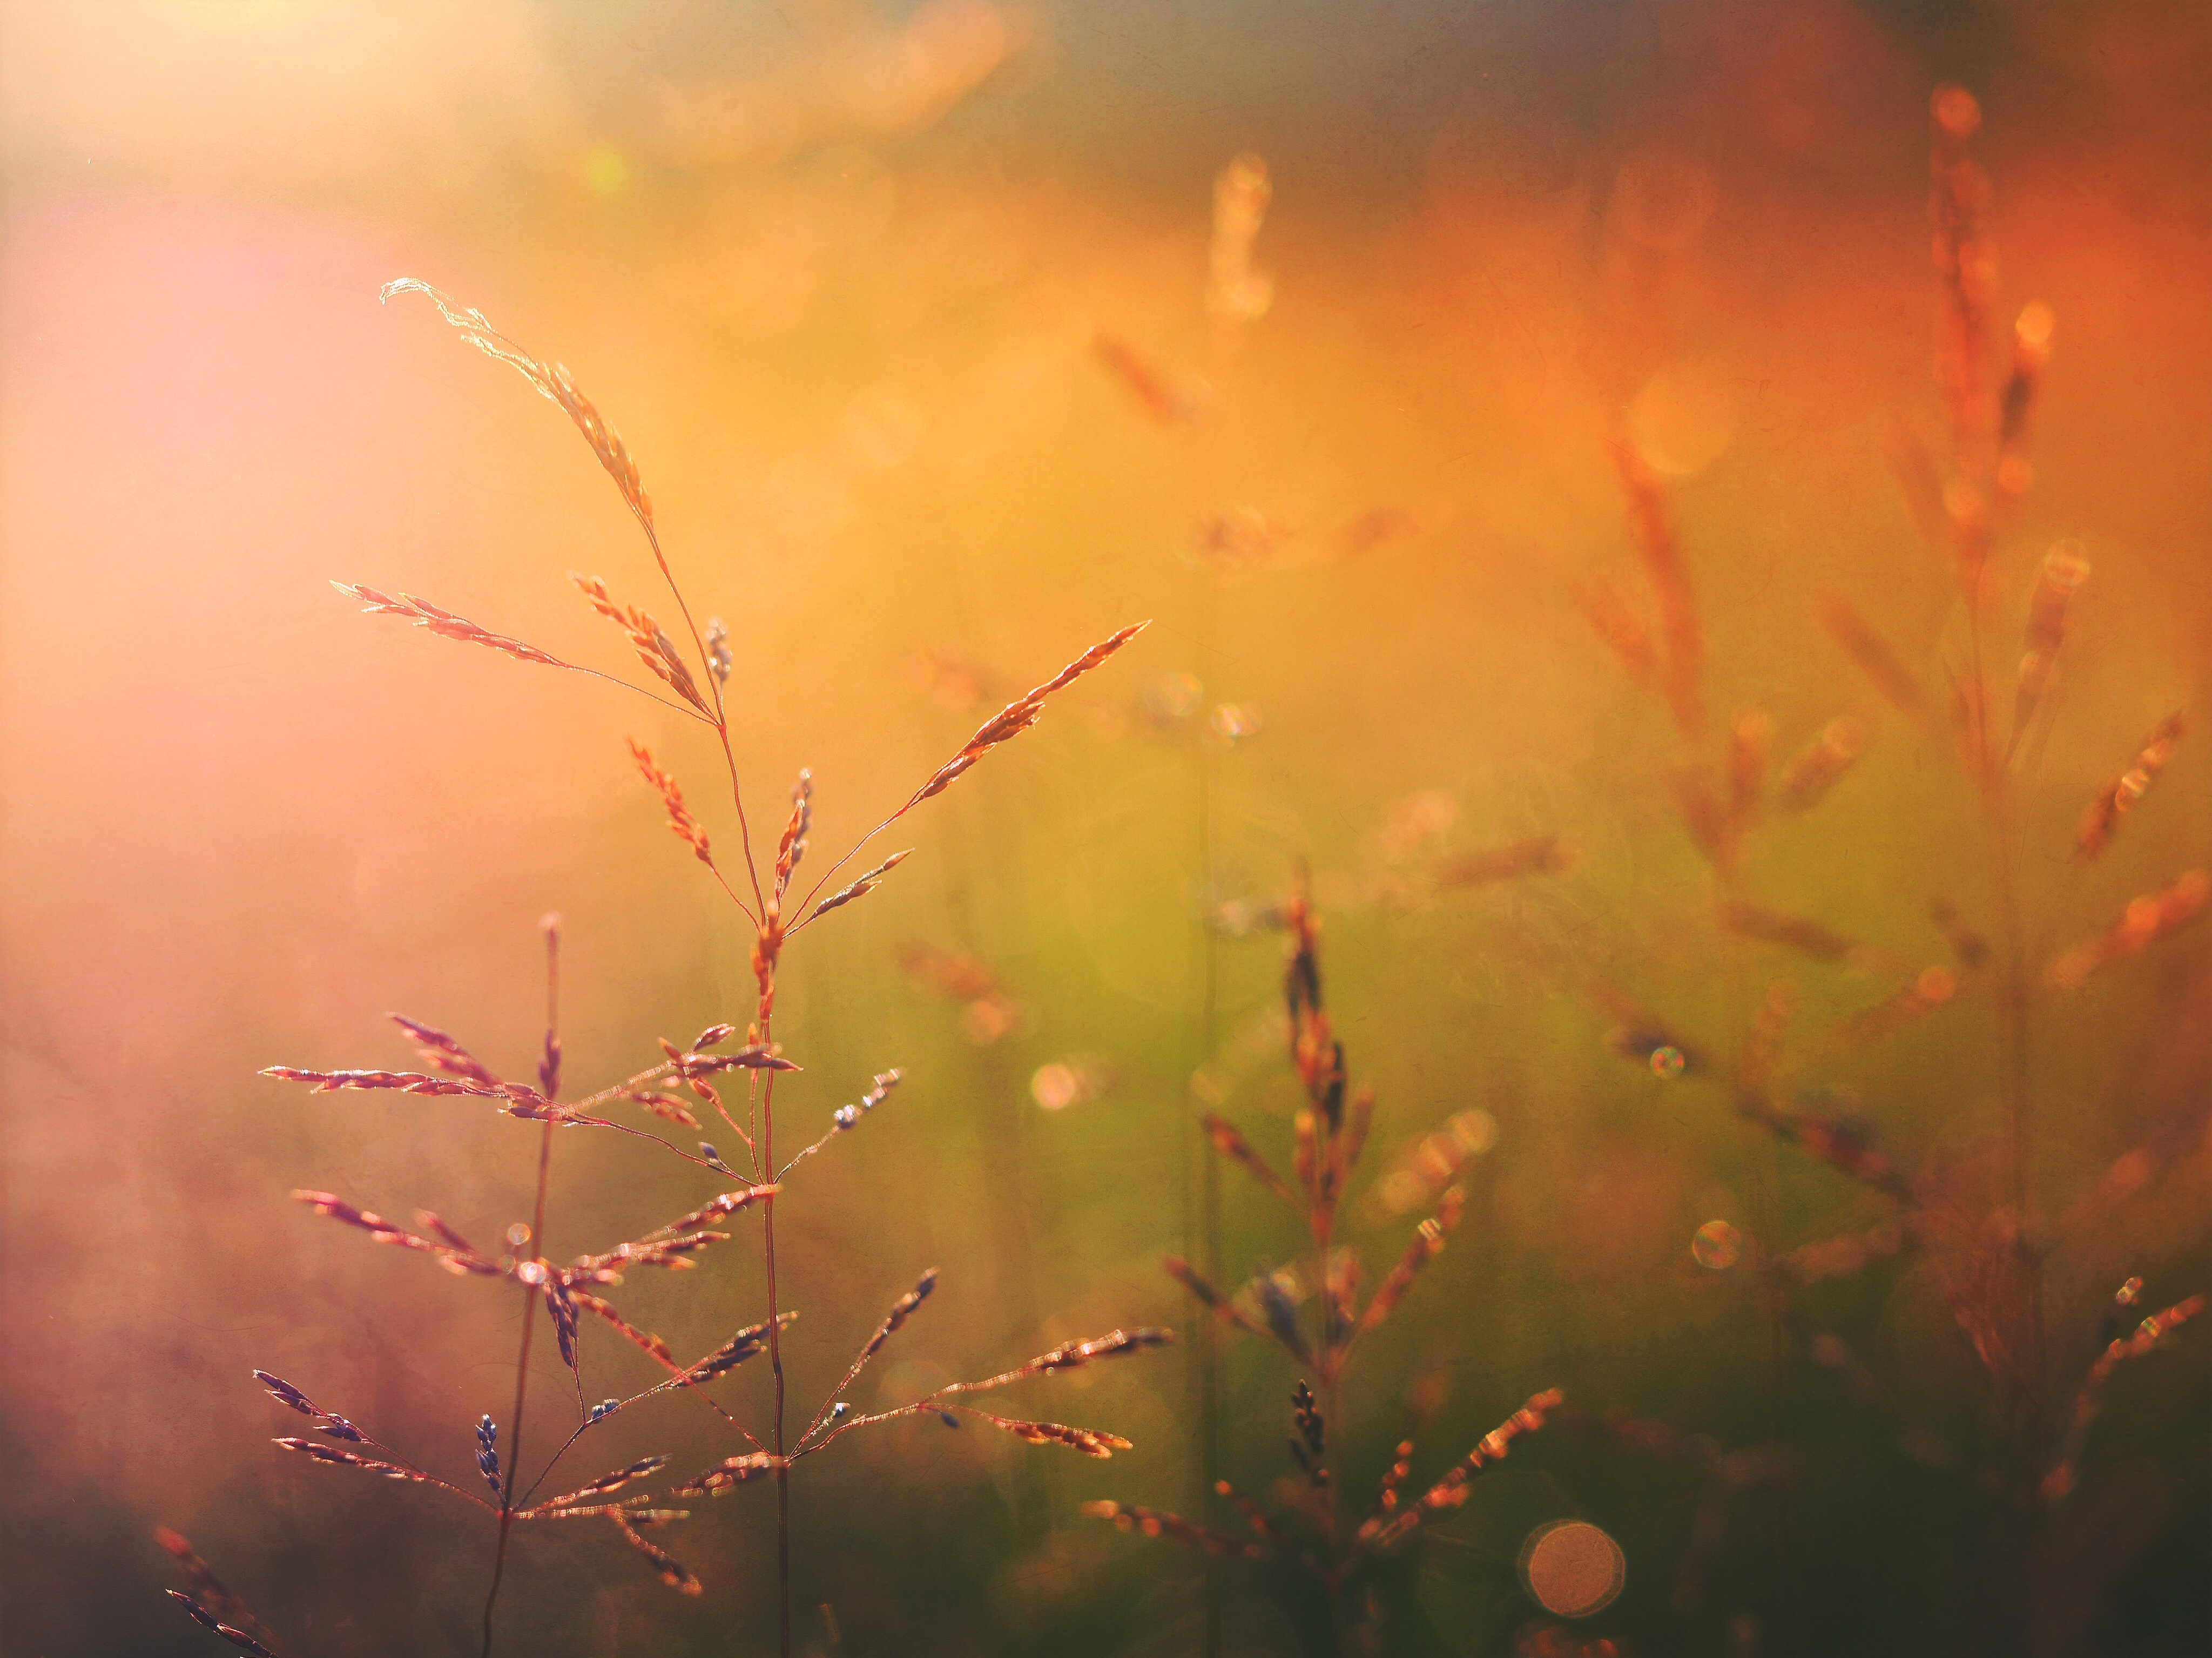 Plant  Golden Hour  Stalk And Nature Hd Photo By Aaron